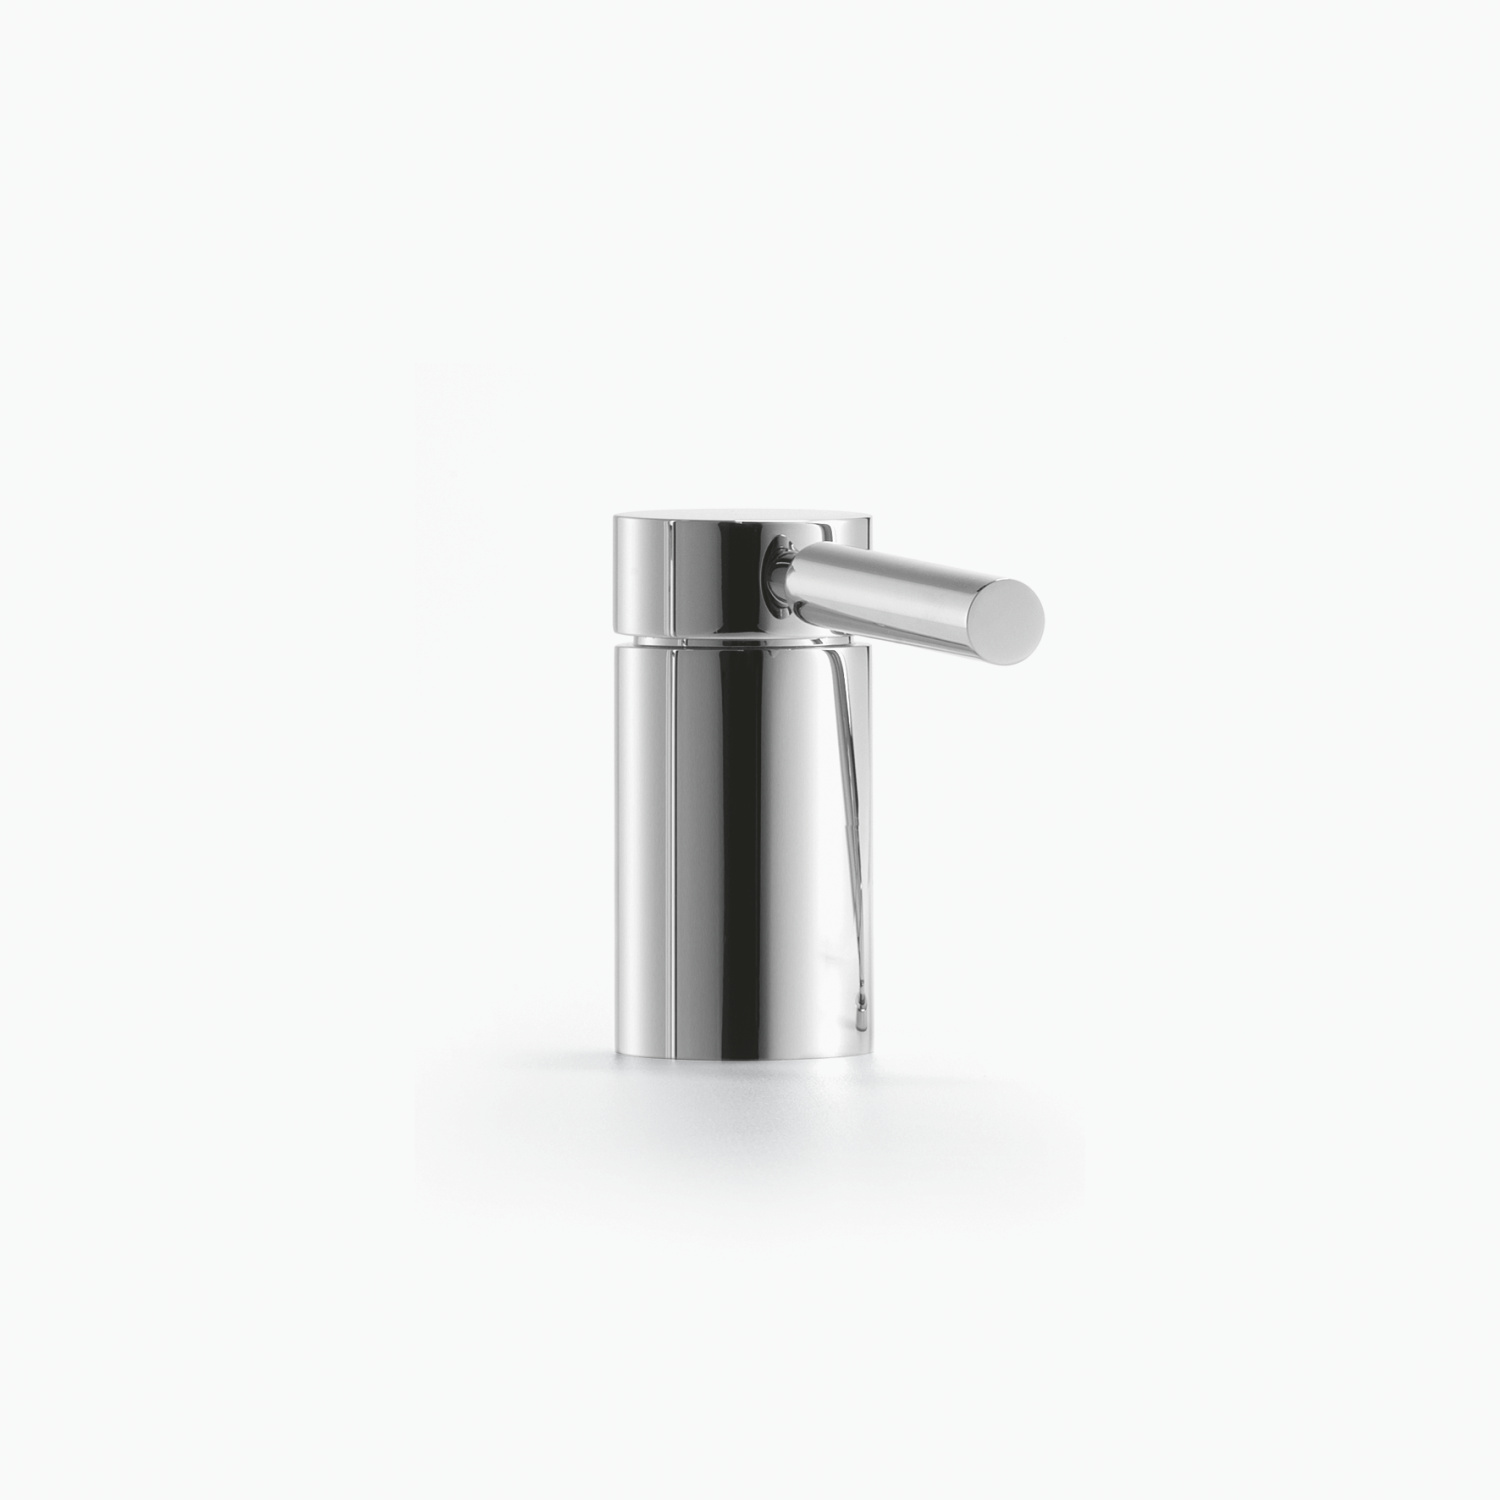 Single-lever bath mixer for bath rim or tile edge installation - platinum matt